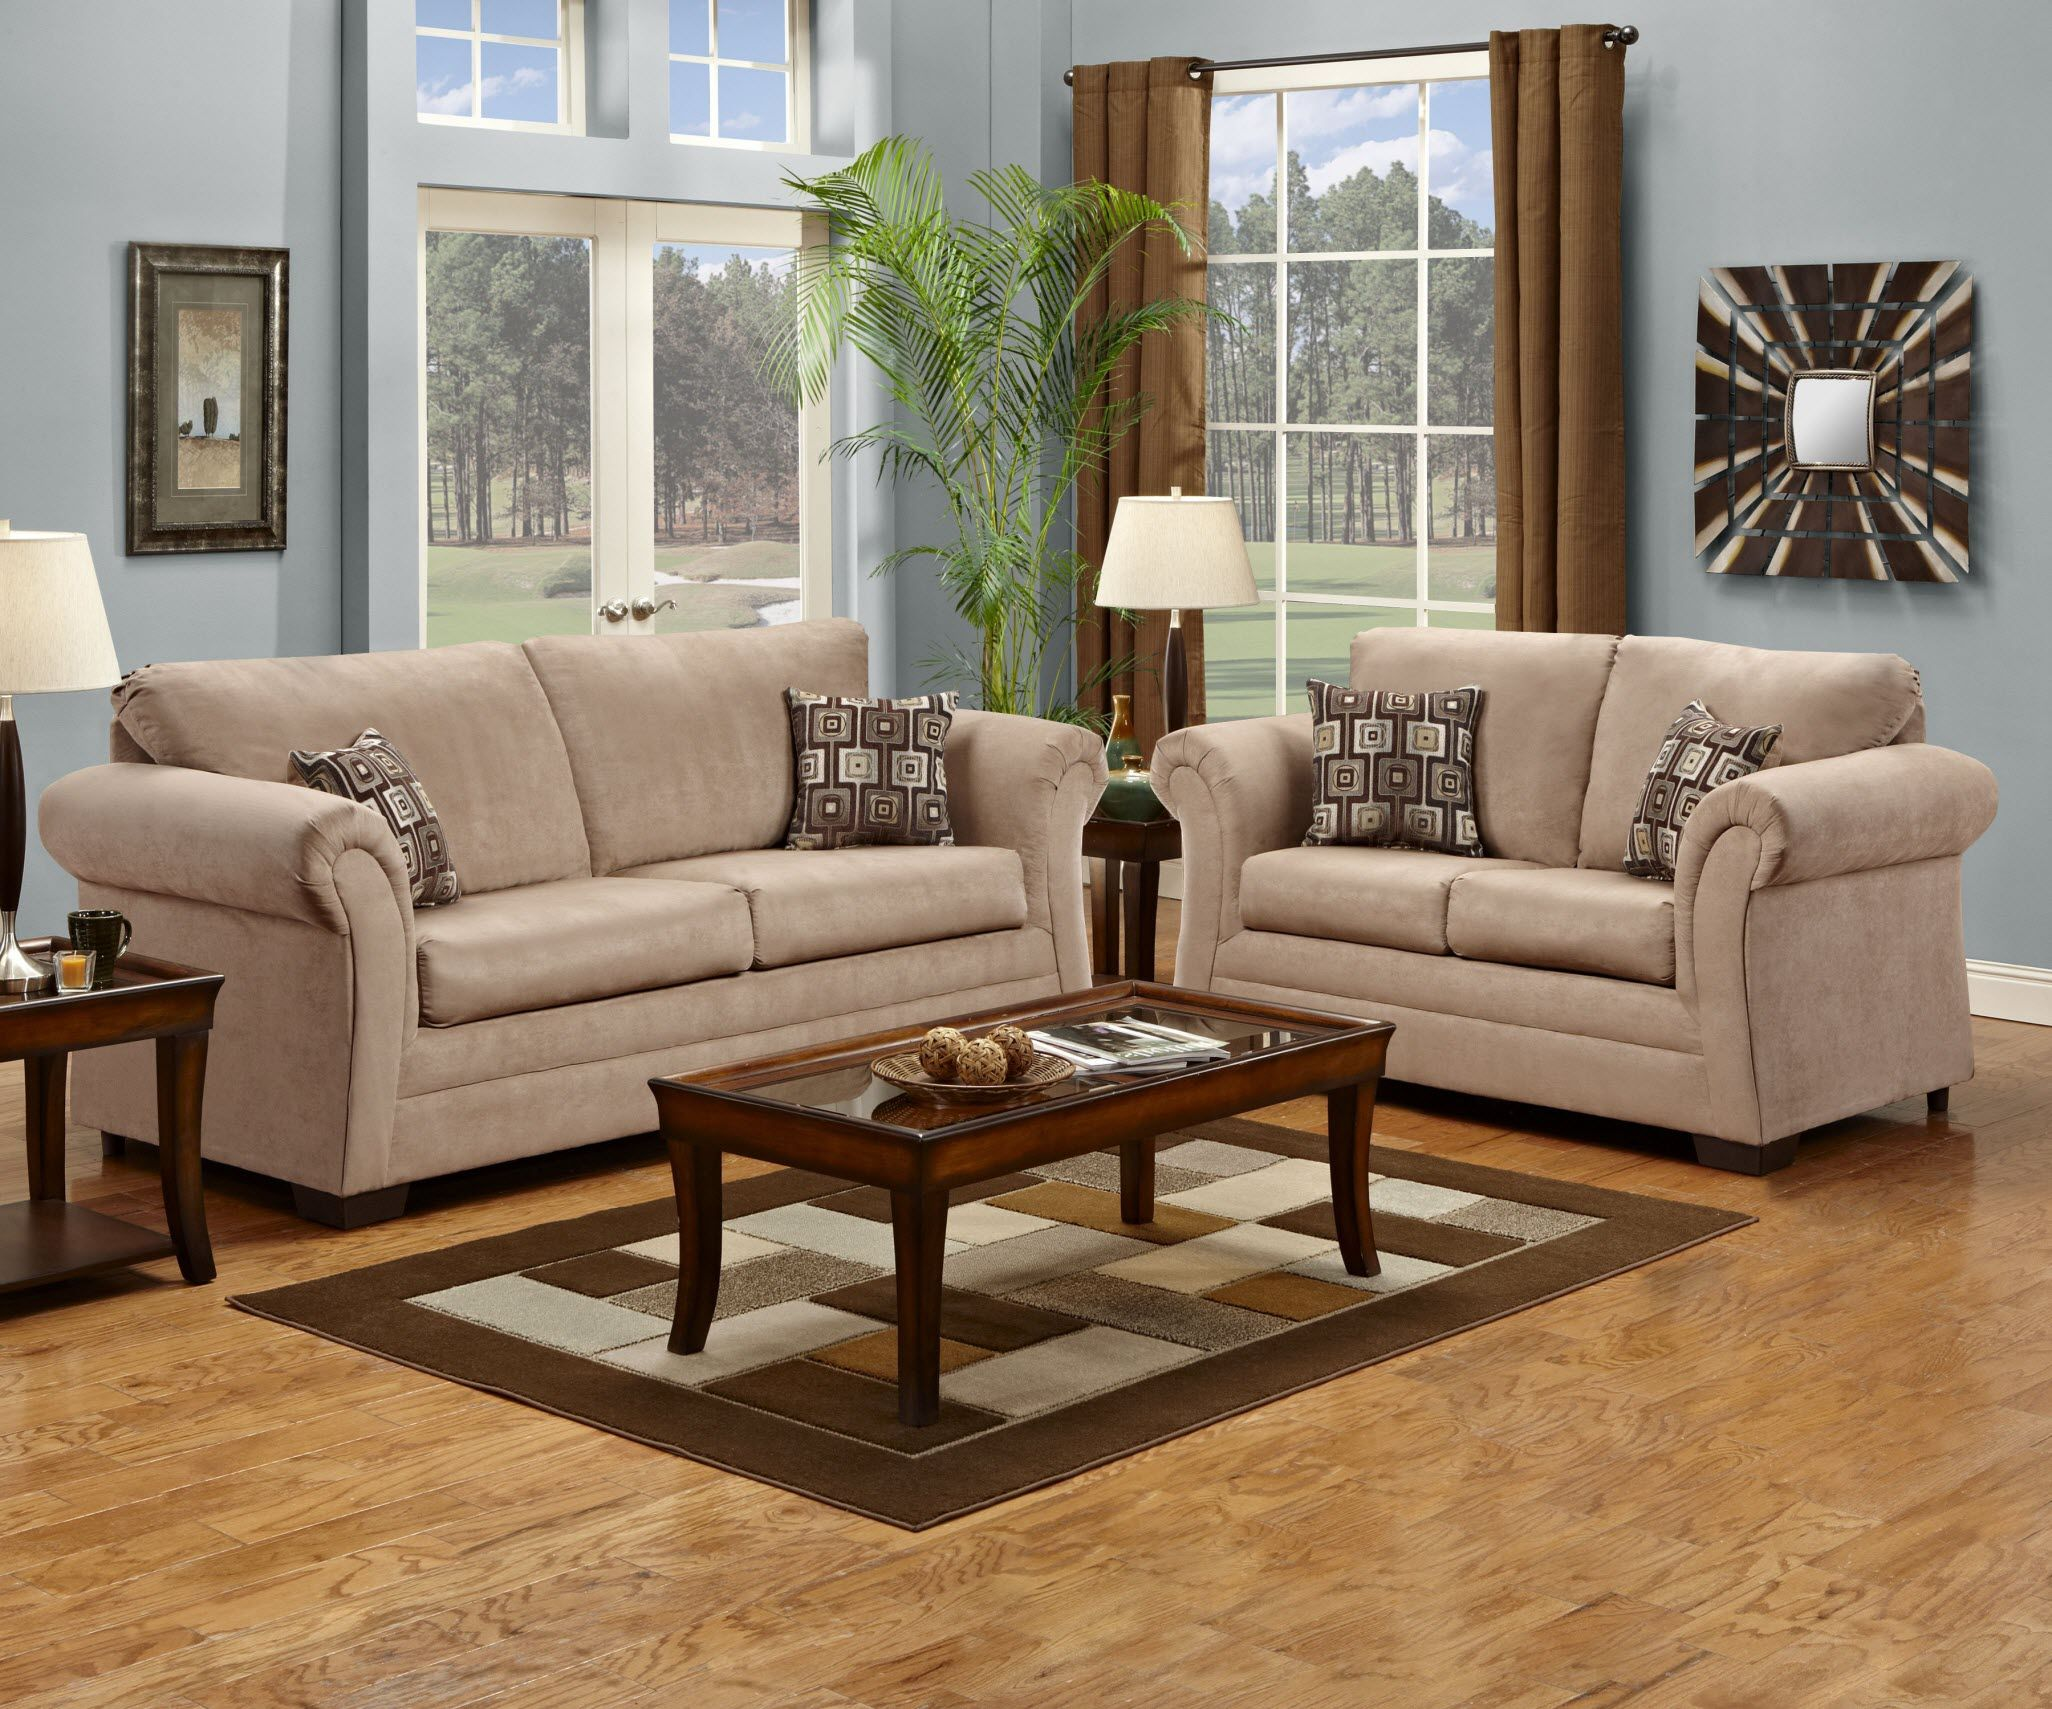 2255 Simmons Victory Lane Taupe Sofa and Loveseat